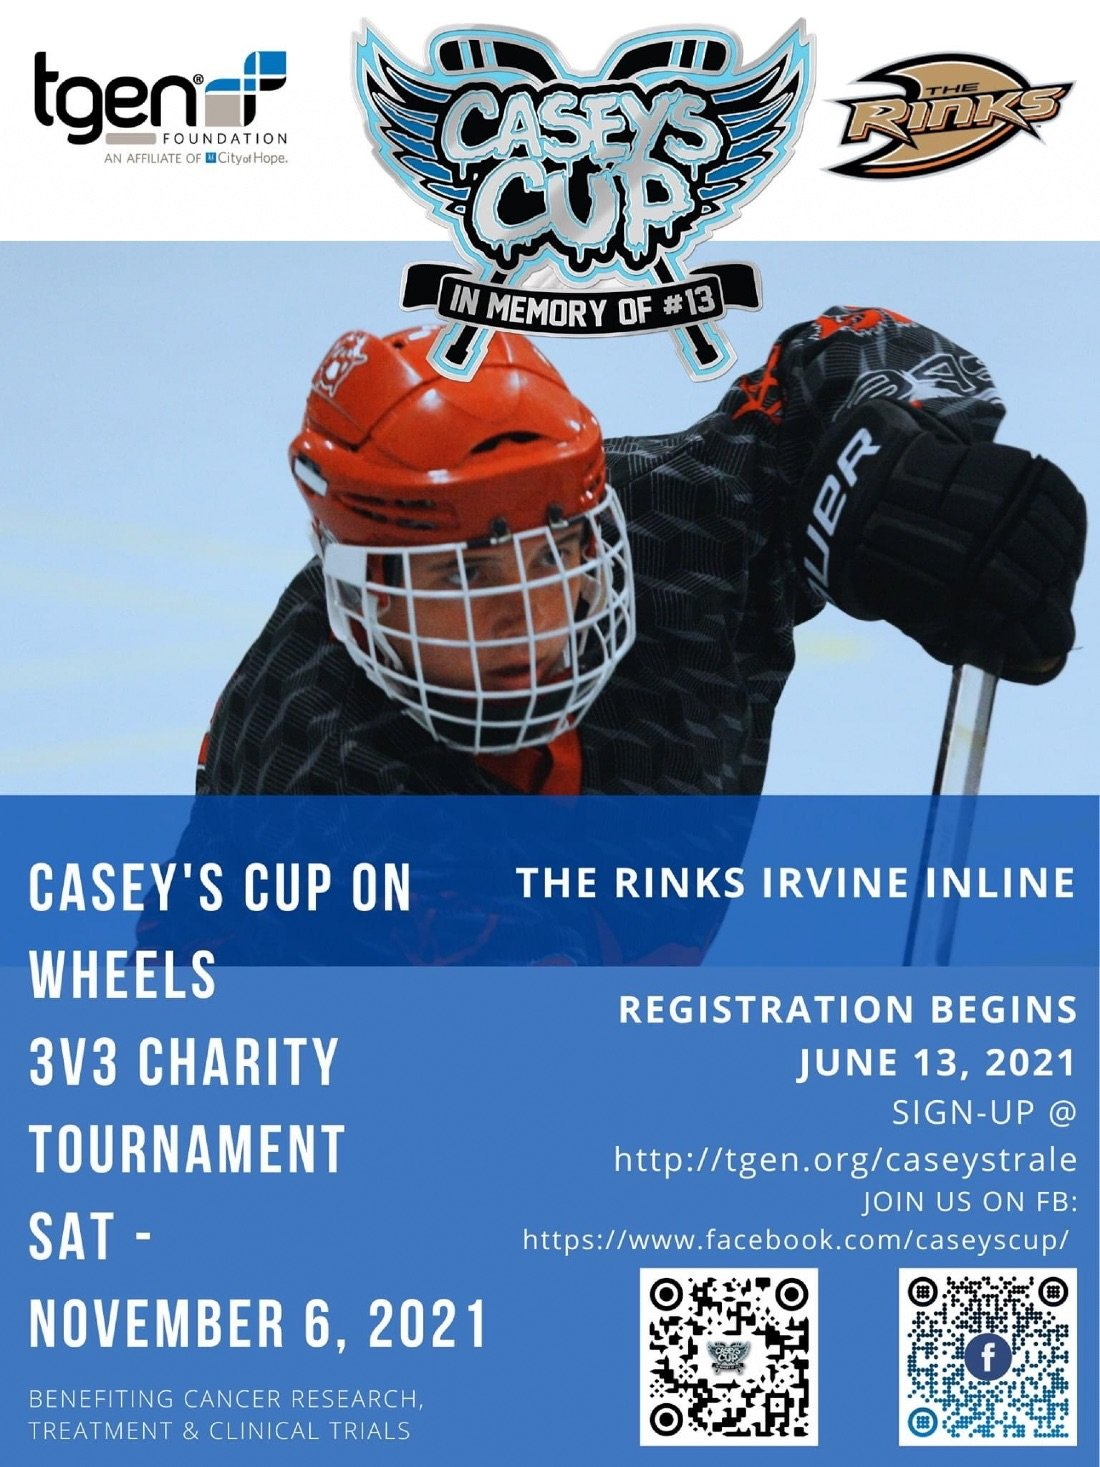 CASEY'S CUP ON WHEELS, 6 November | Event in Irvine | AllEvents.in